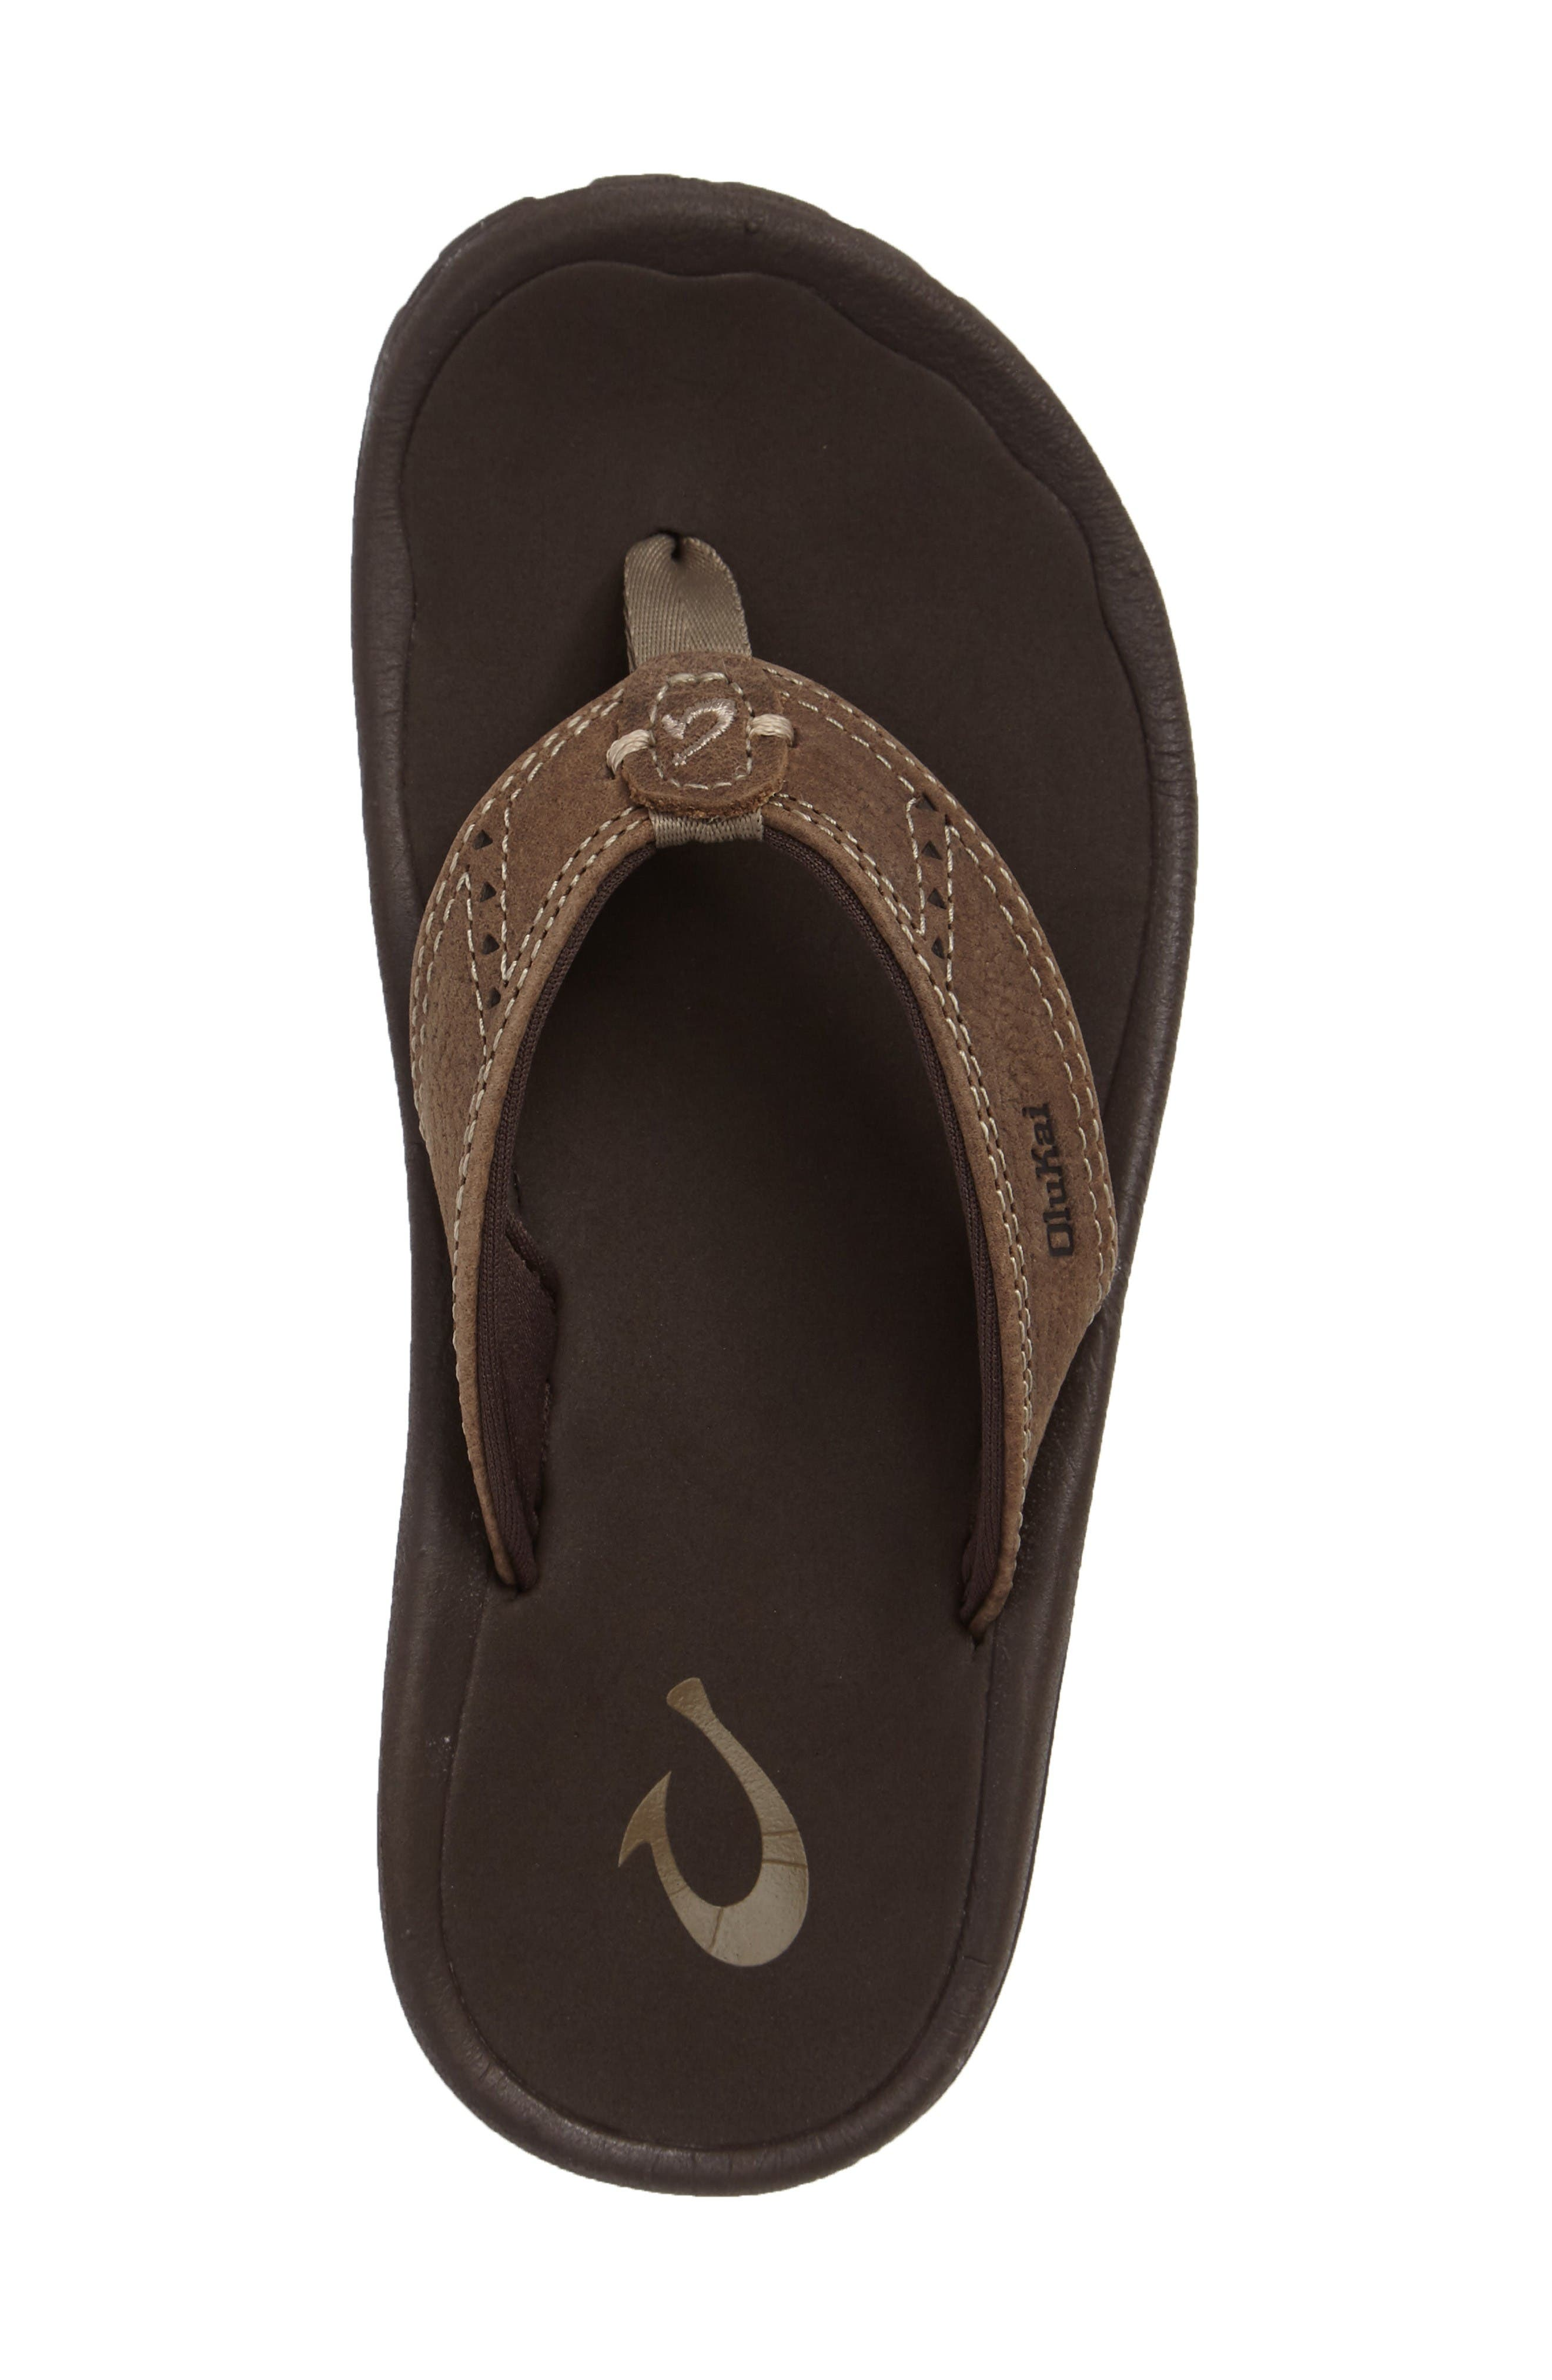 Nui Leather Flip Flop,                             Alternate thumbnail 3, color,                             Clay/ Dark Java